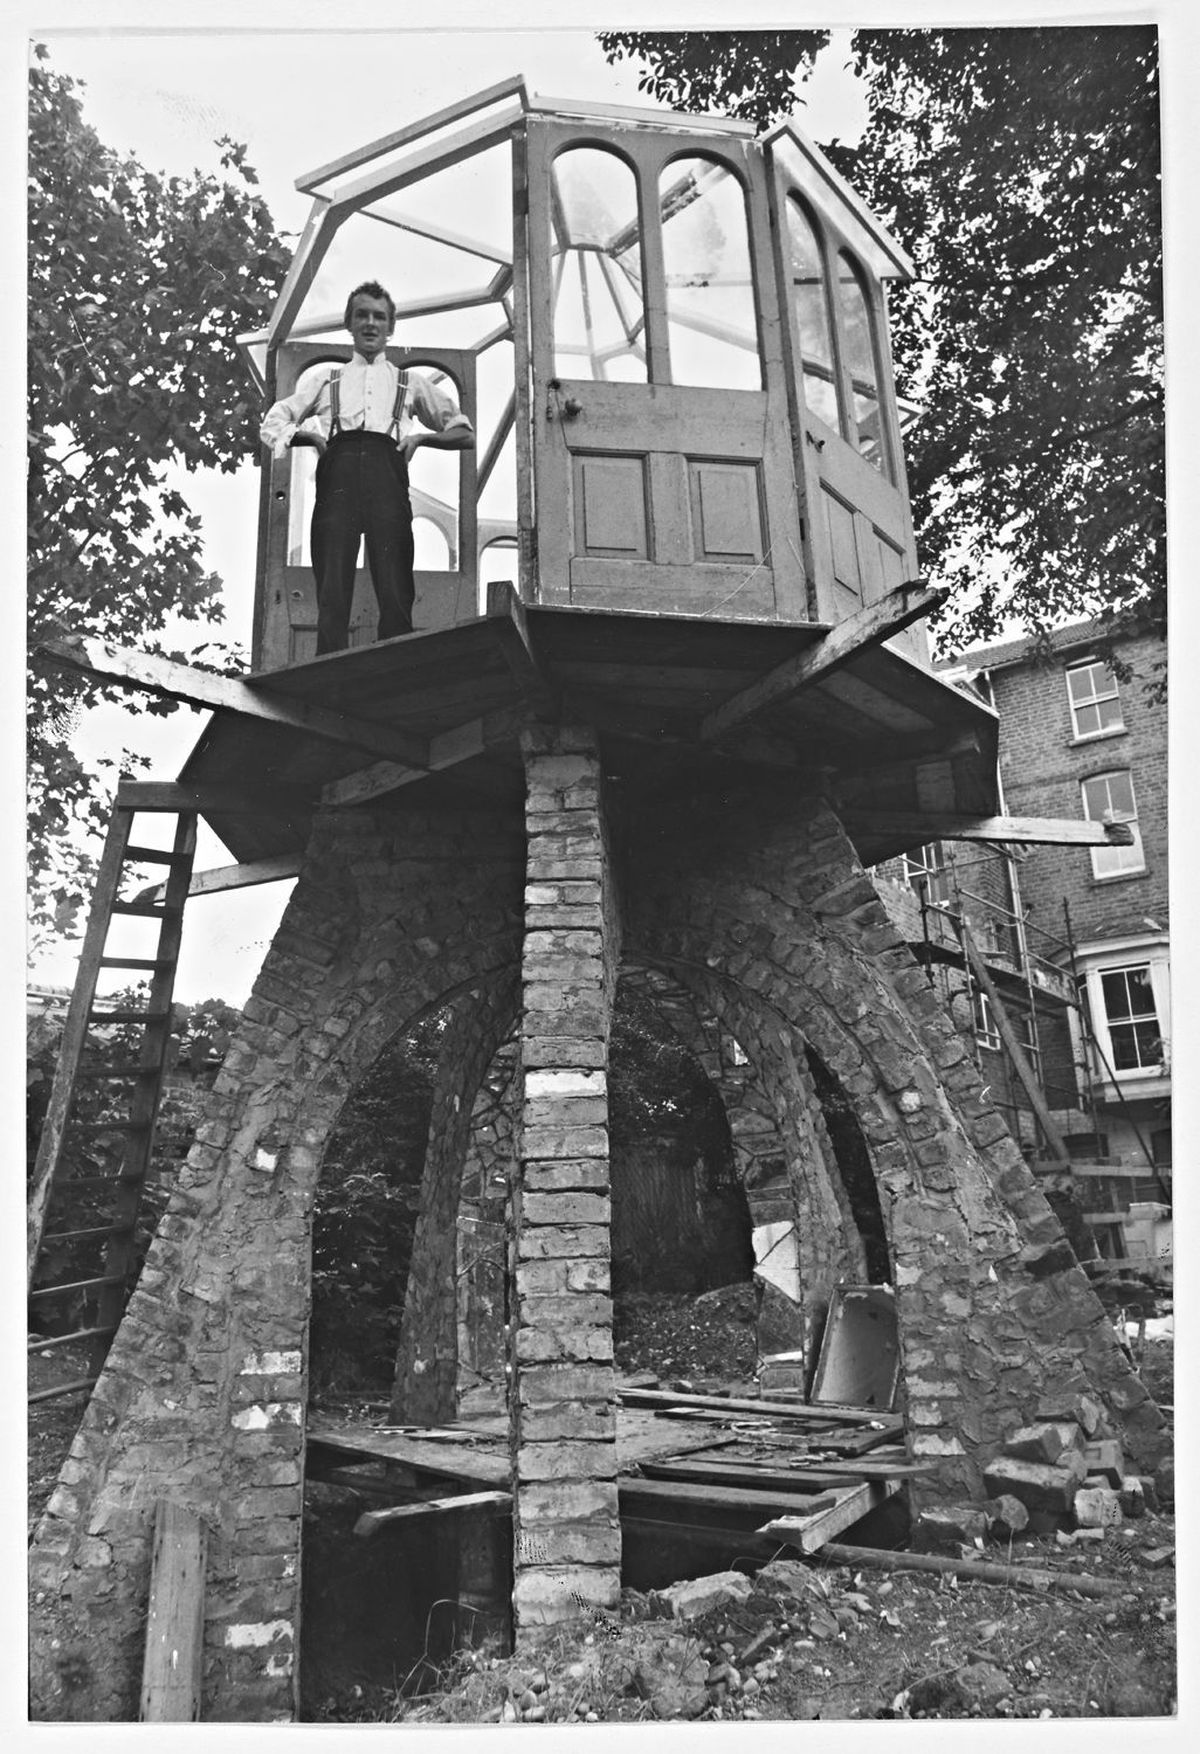 Wolverhampton Council objected to John Crosby's summer house. The photographer is J. S.